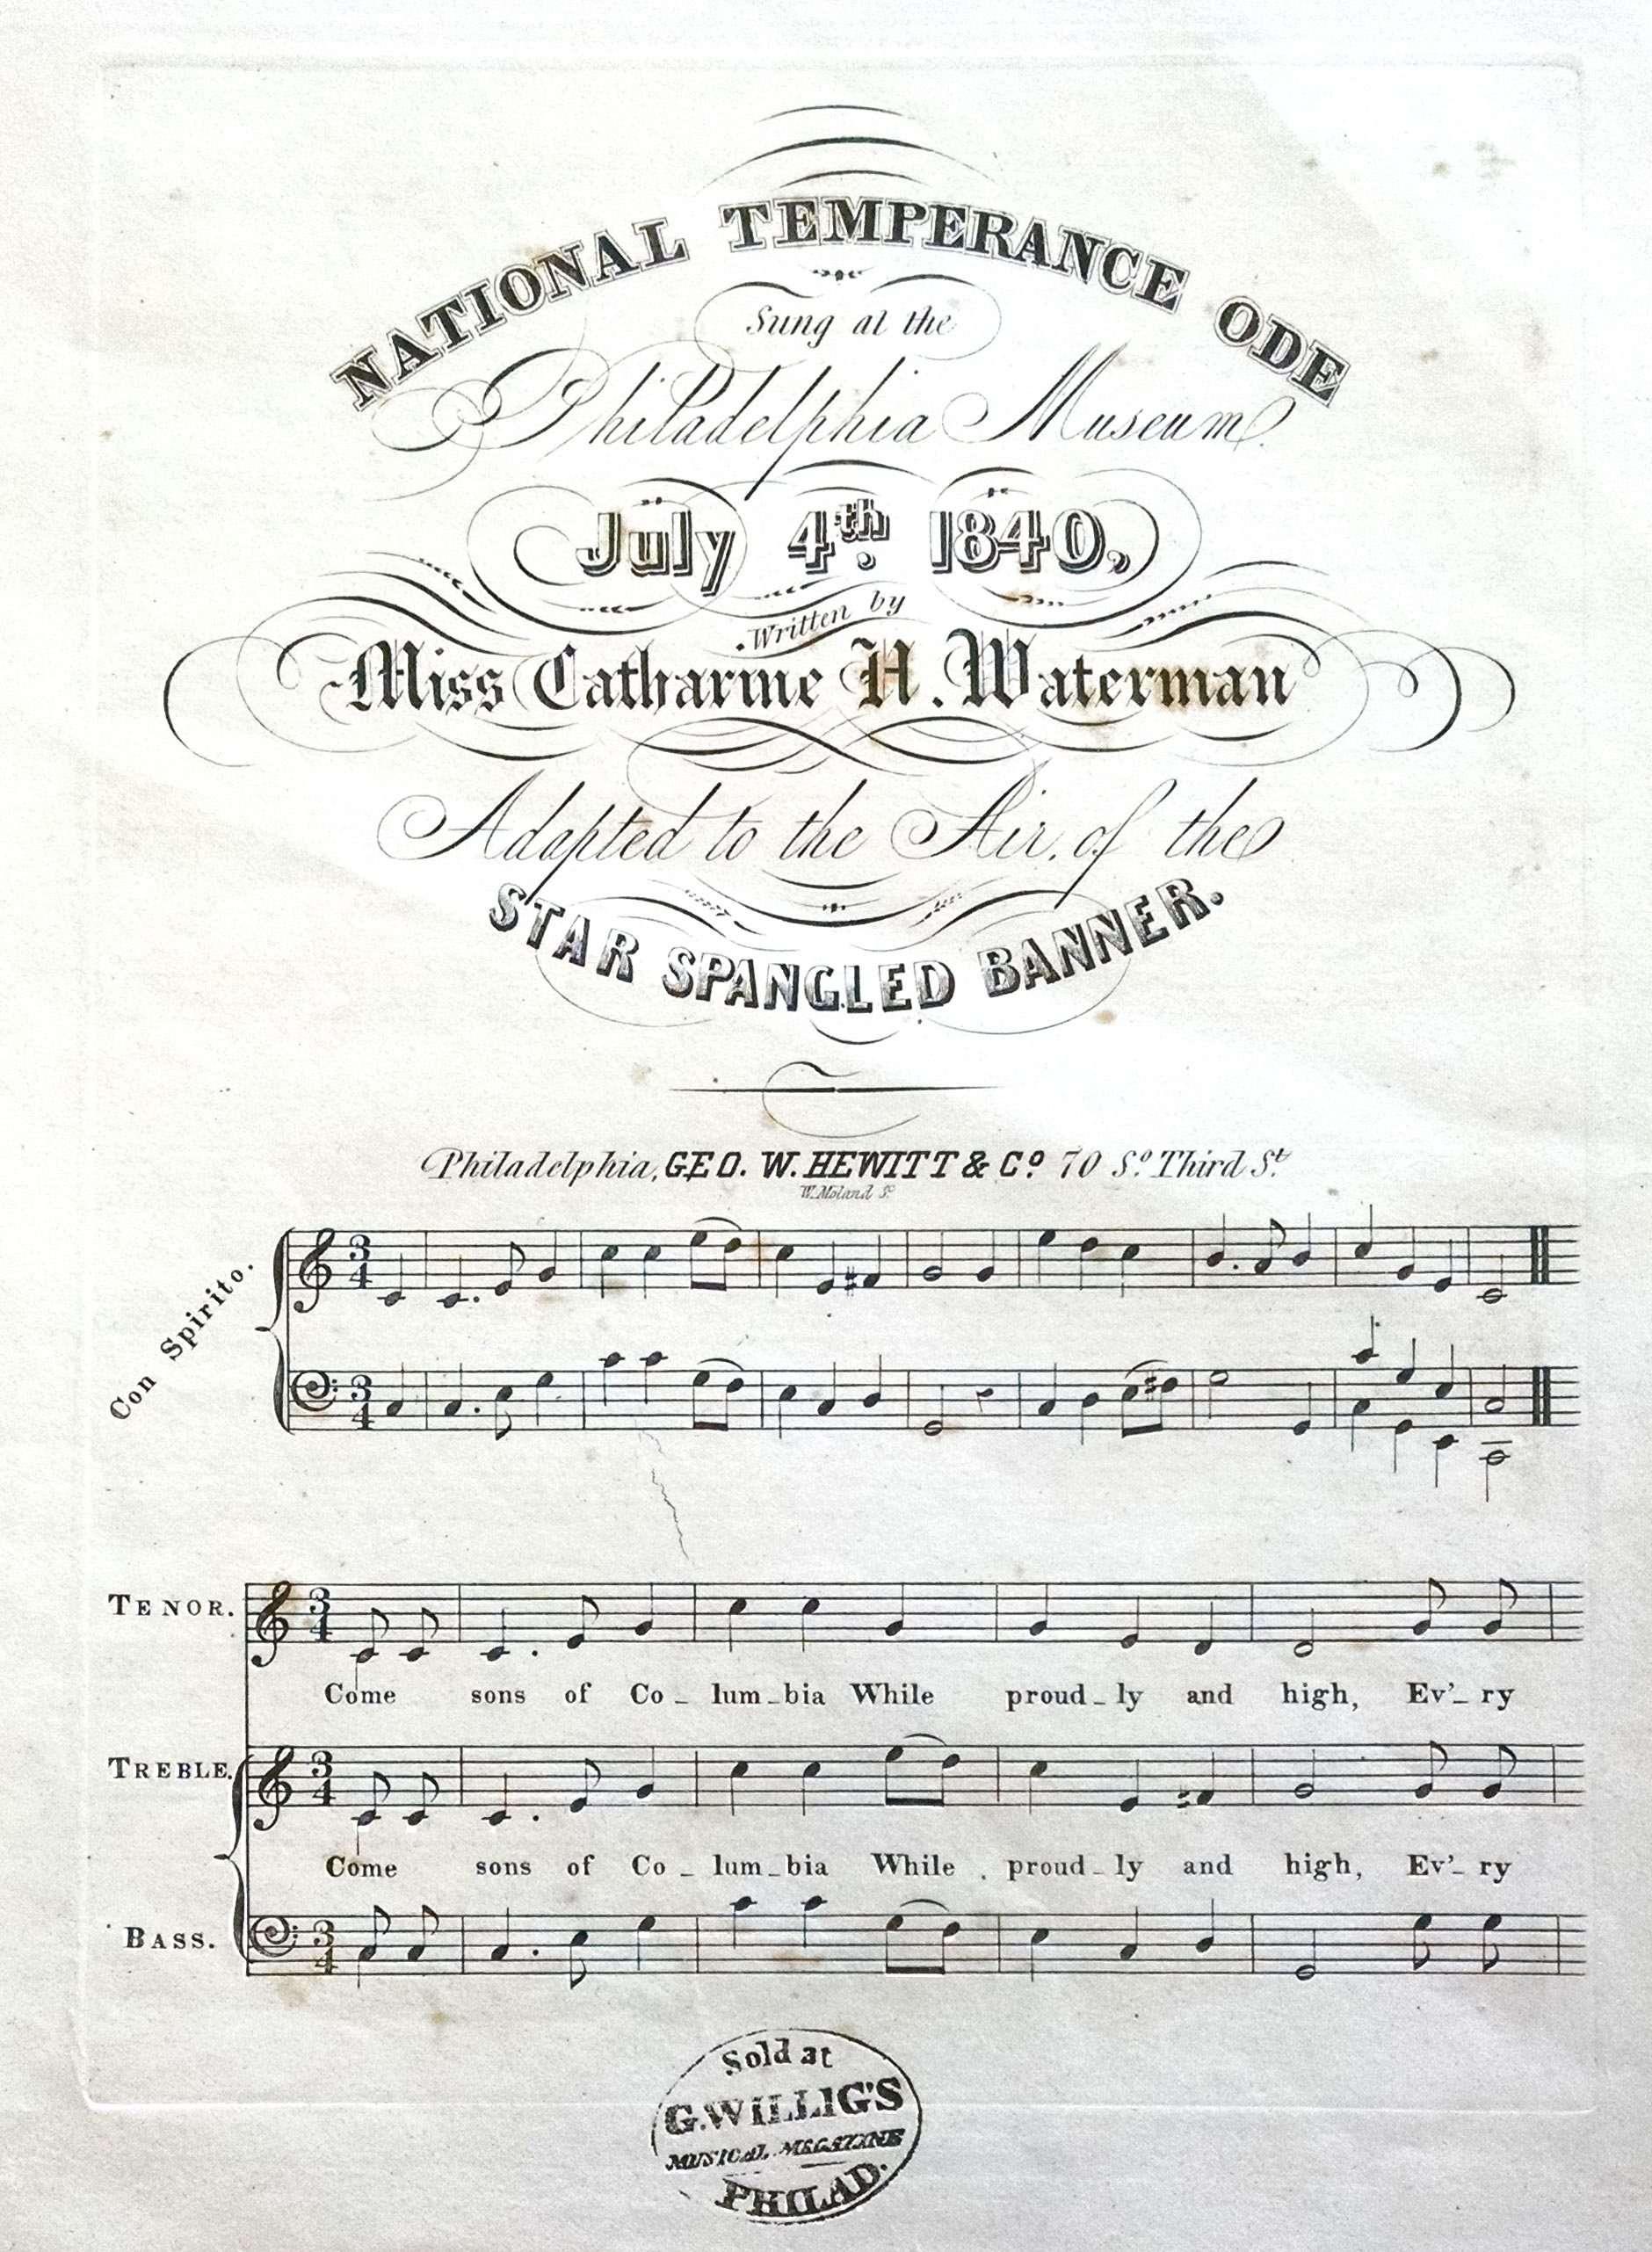 U-M to digitize 19th-century sheet music collection